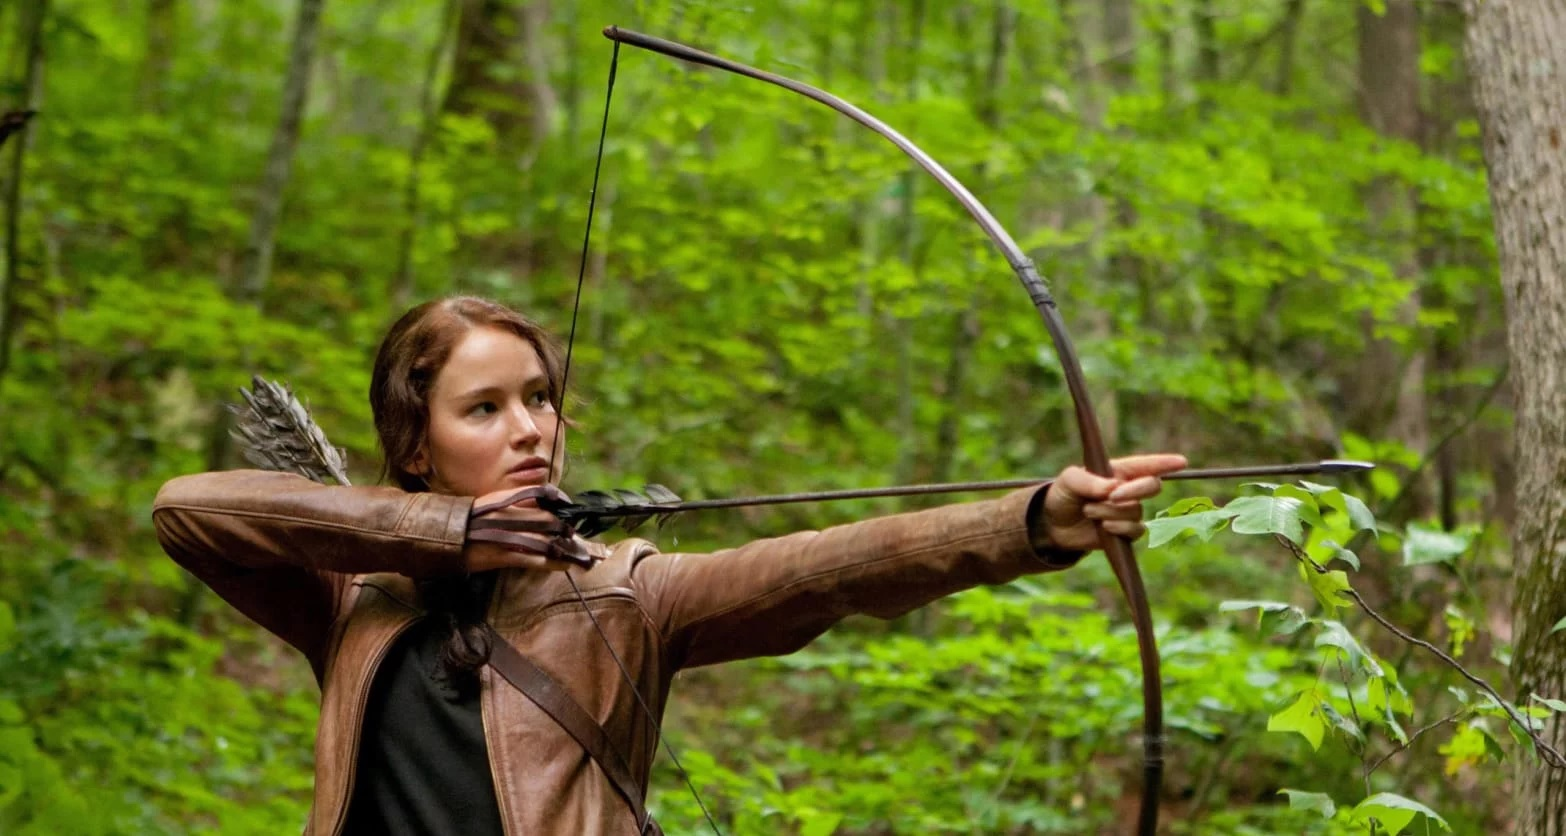 2. The Hunger Games